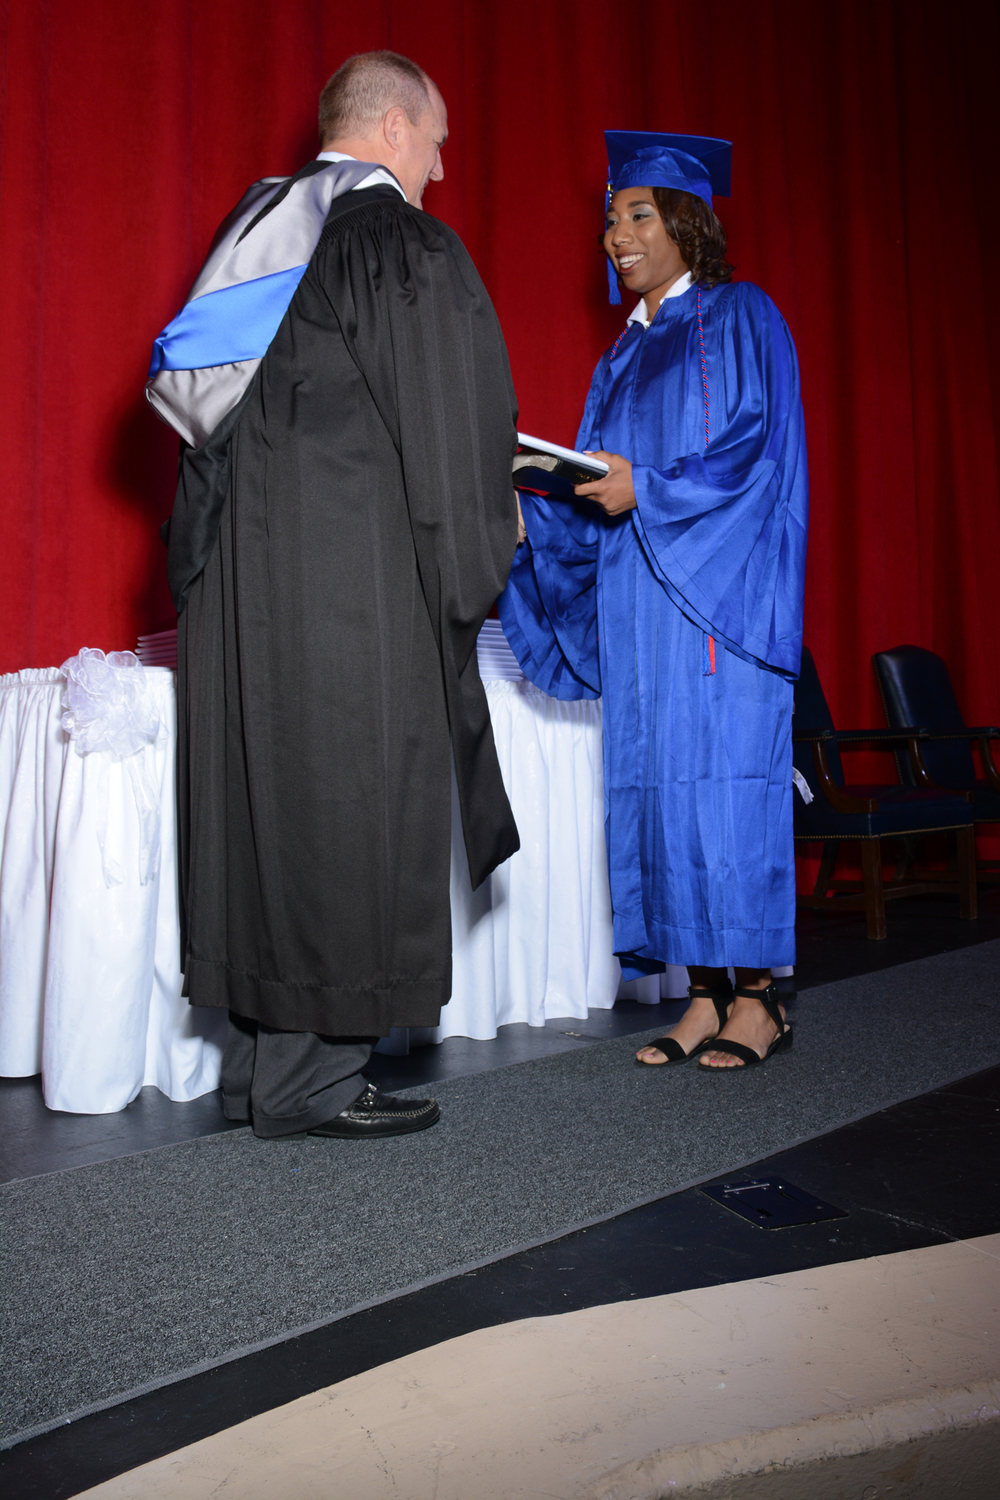 May16 GraduationPhotos36.jpg